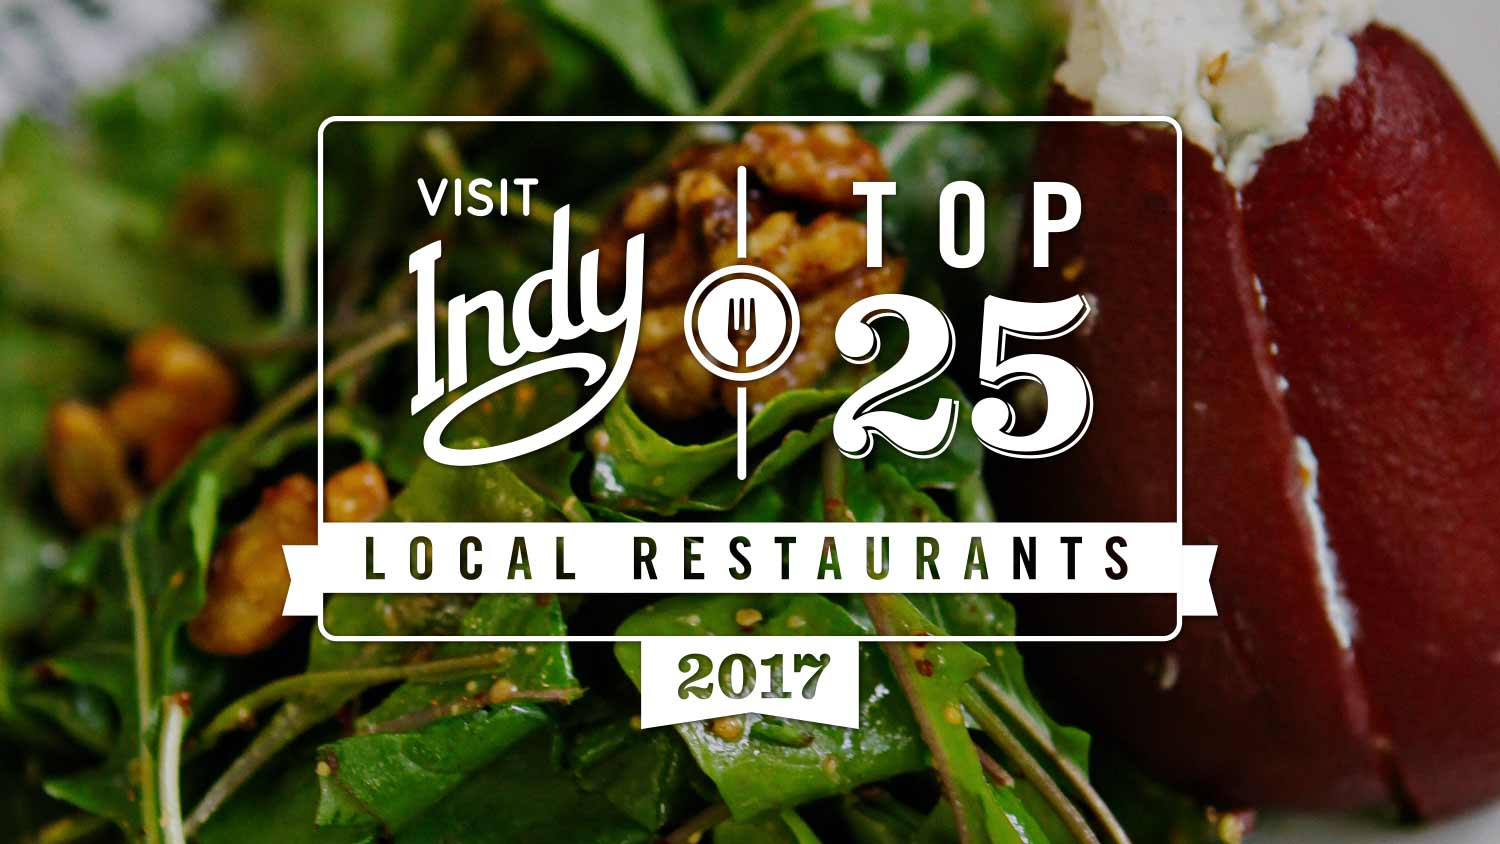 Top 25 local restaurants 2017